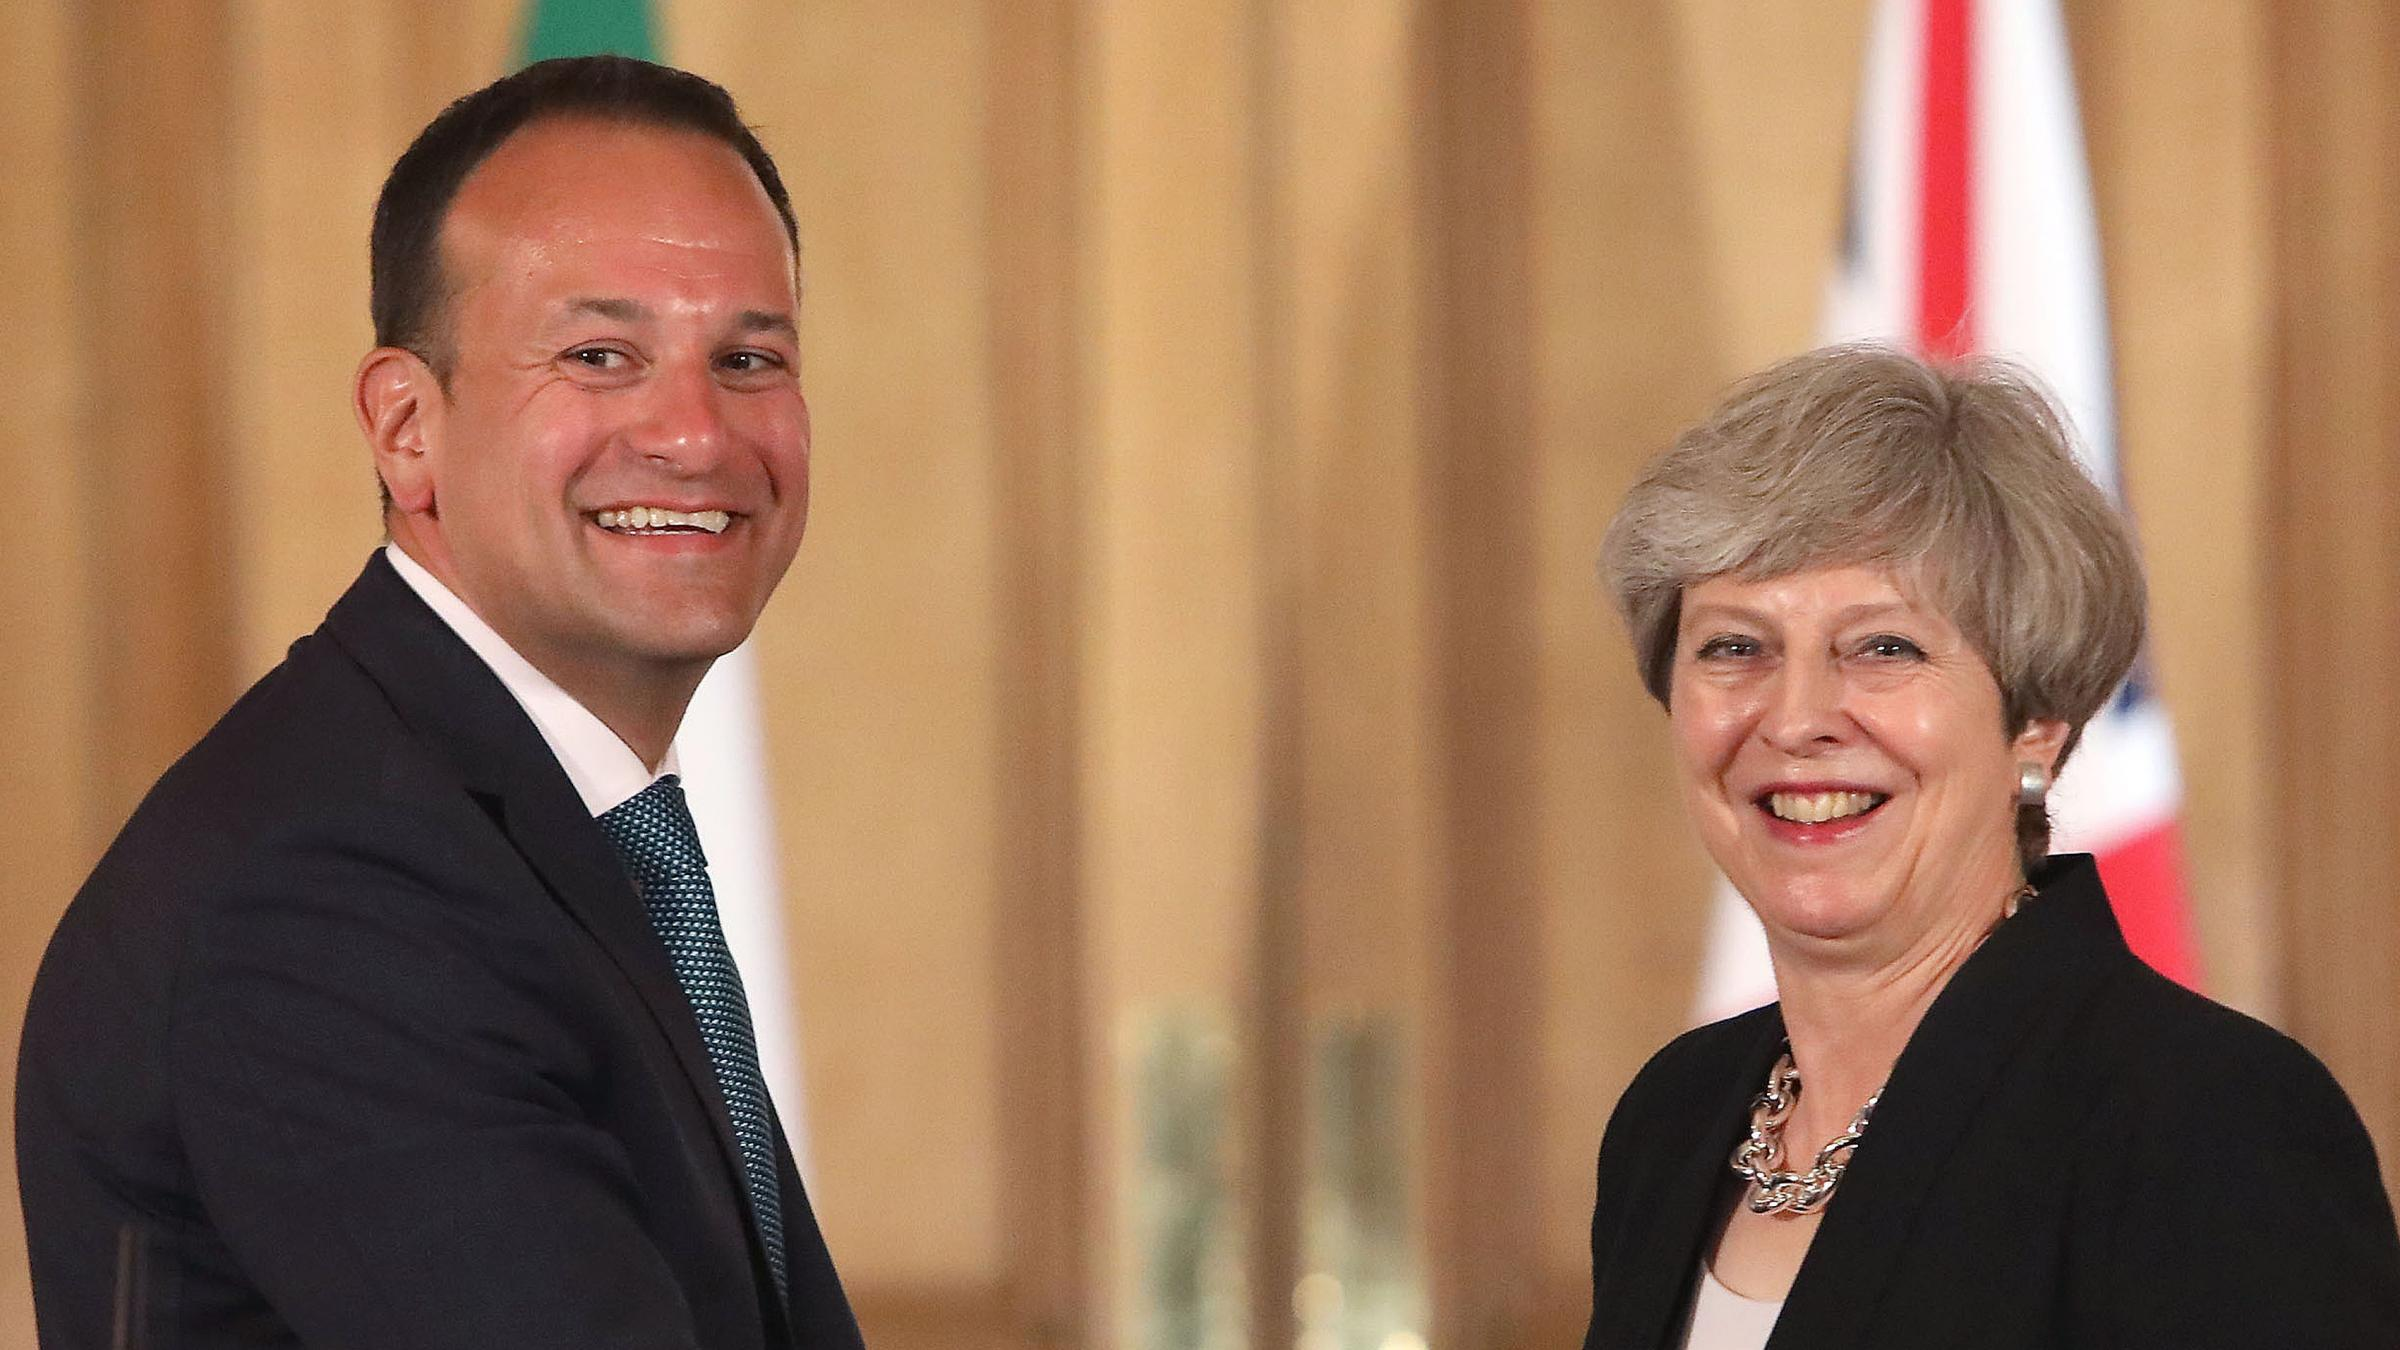 DUP source says talks with Tories 'not proceeding as expected'